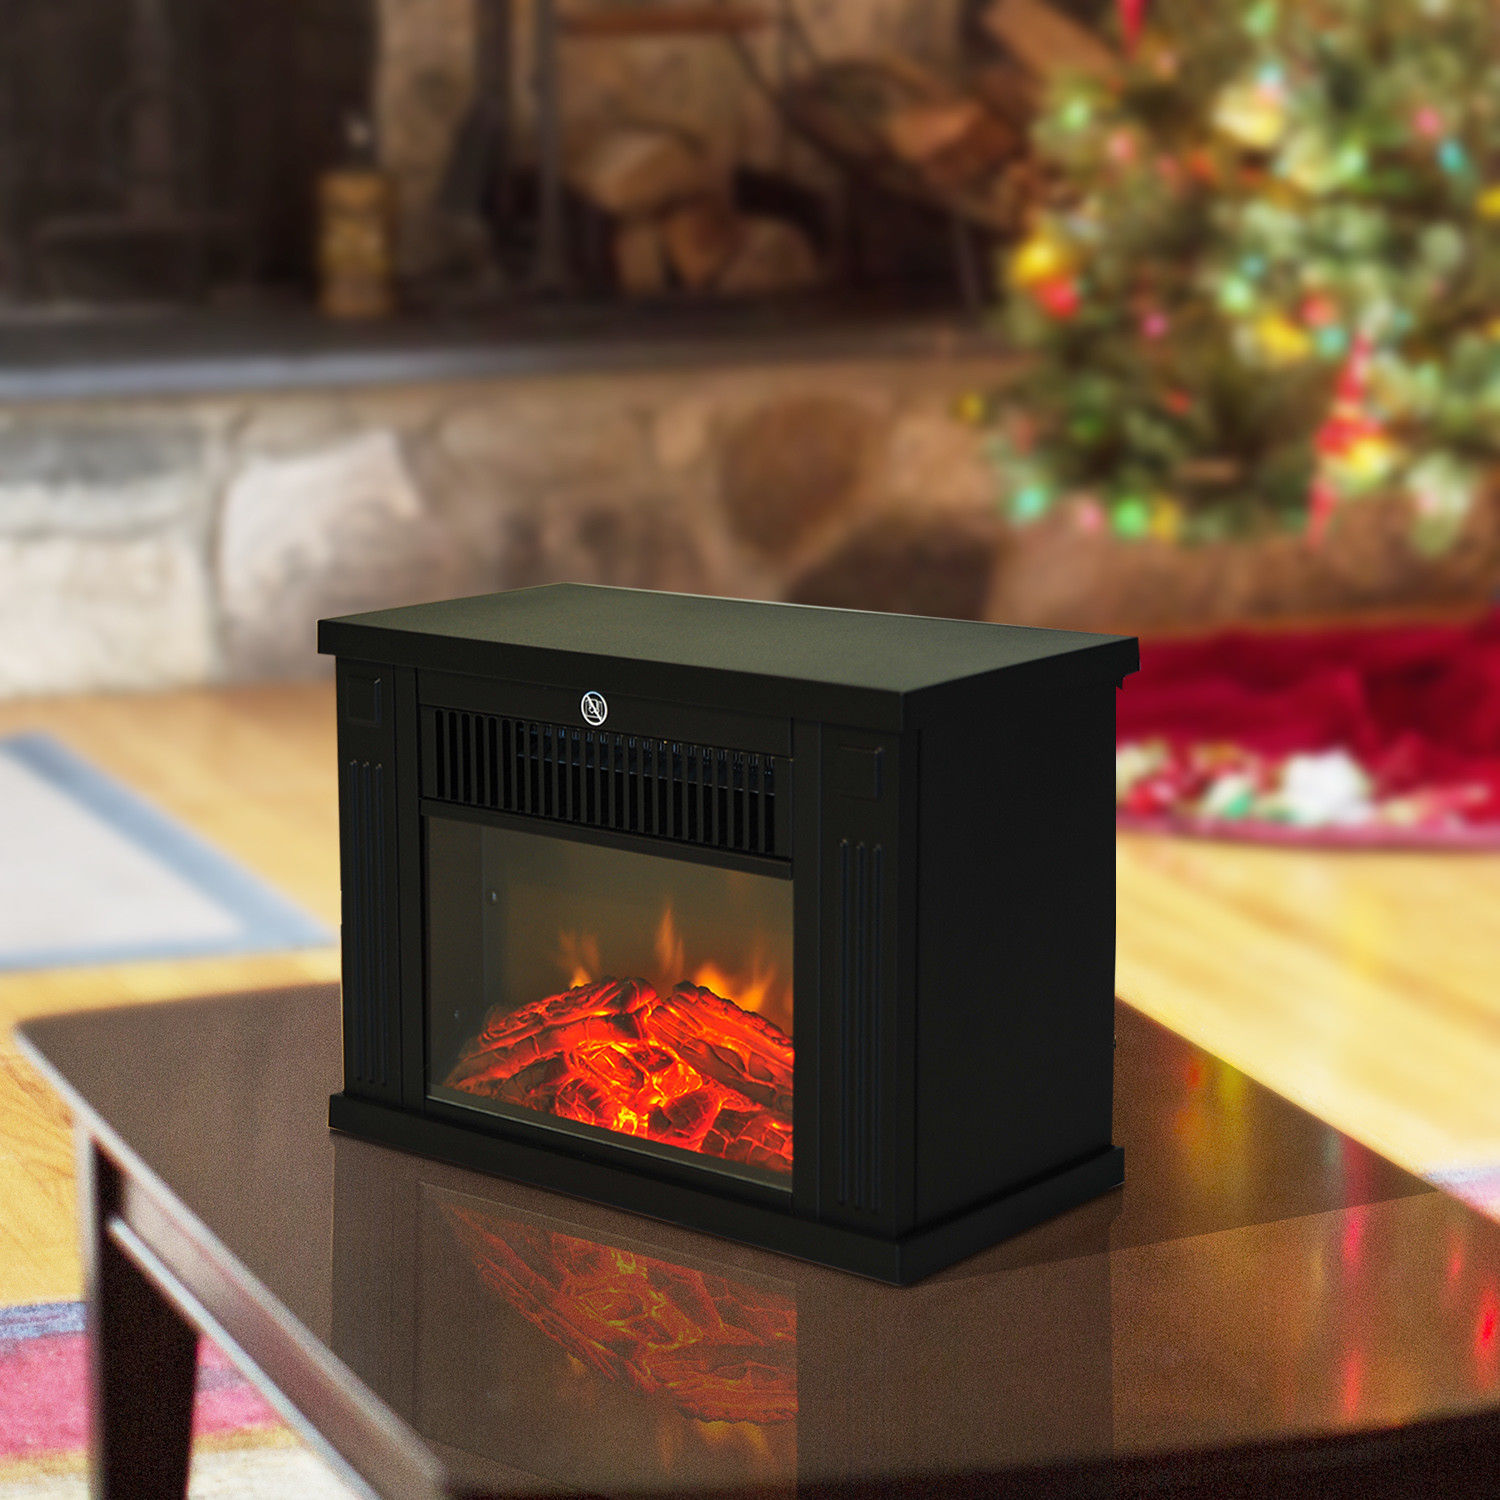 Image of £39.99 HOMCOM Fire Wood LED Flame Electric Fireplace-Black / 1.2KW Freestanding Fireplace Log Burning Effect Vintage Heater Stove Living Room Tempered Glass View 820-049 5055974832008